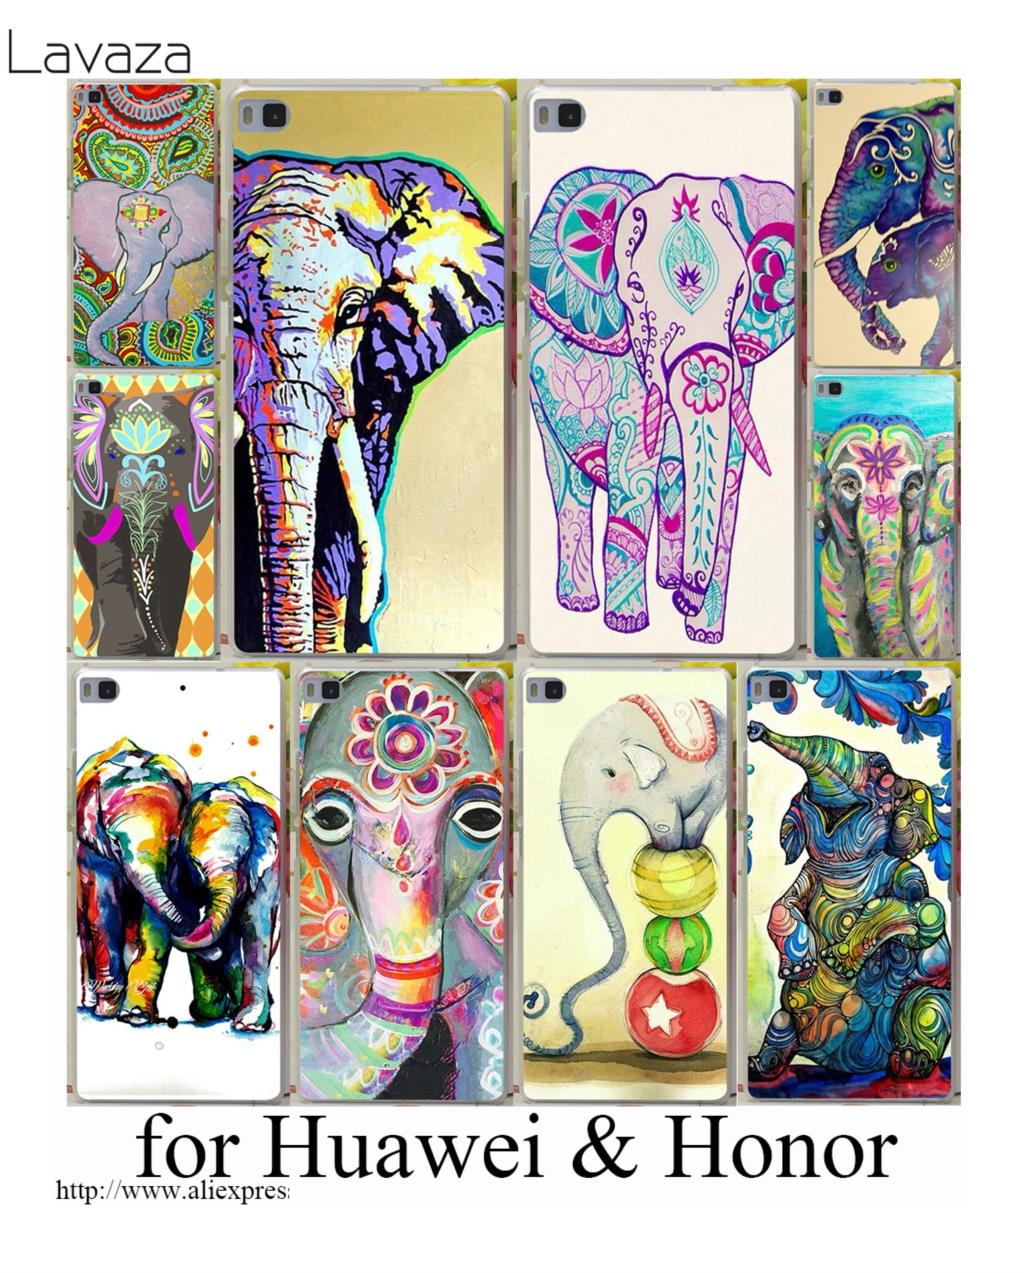 Lavaza Pretty Elephants phone Hard case for Huawei P smart P20 P10 P8 P9 lite mini Plus Pro 2015 2016 2017 ...